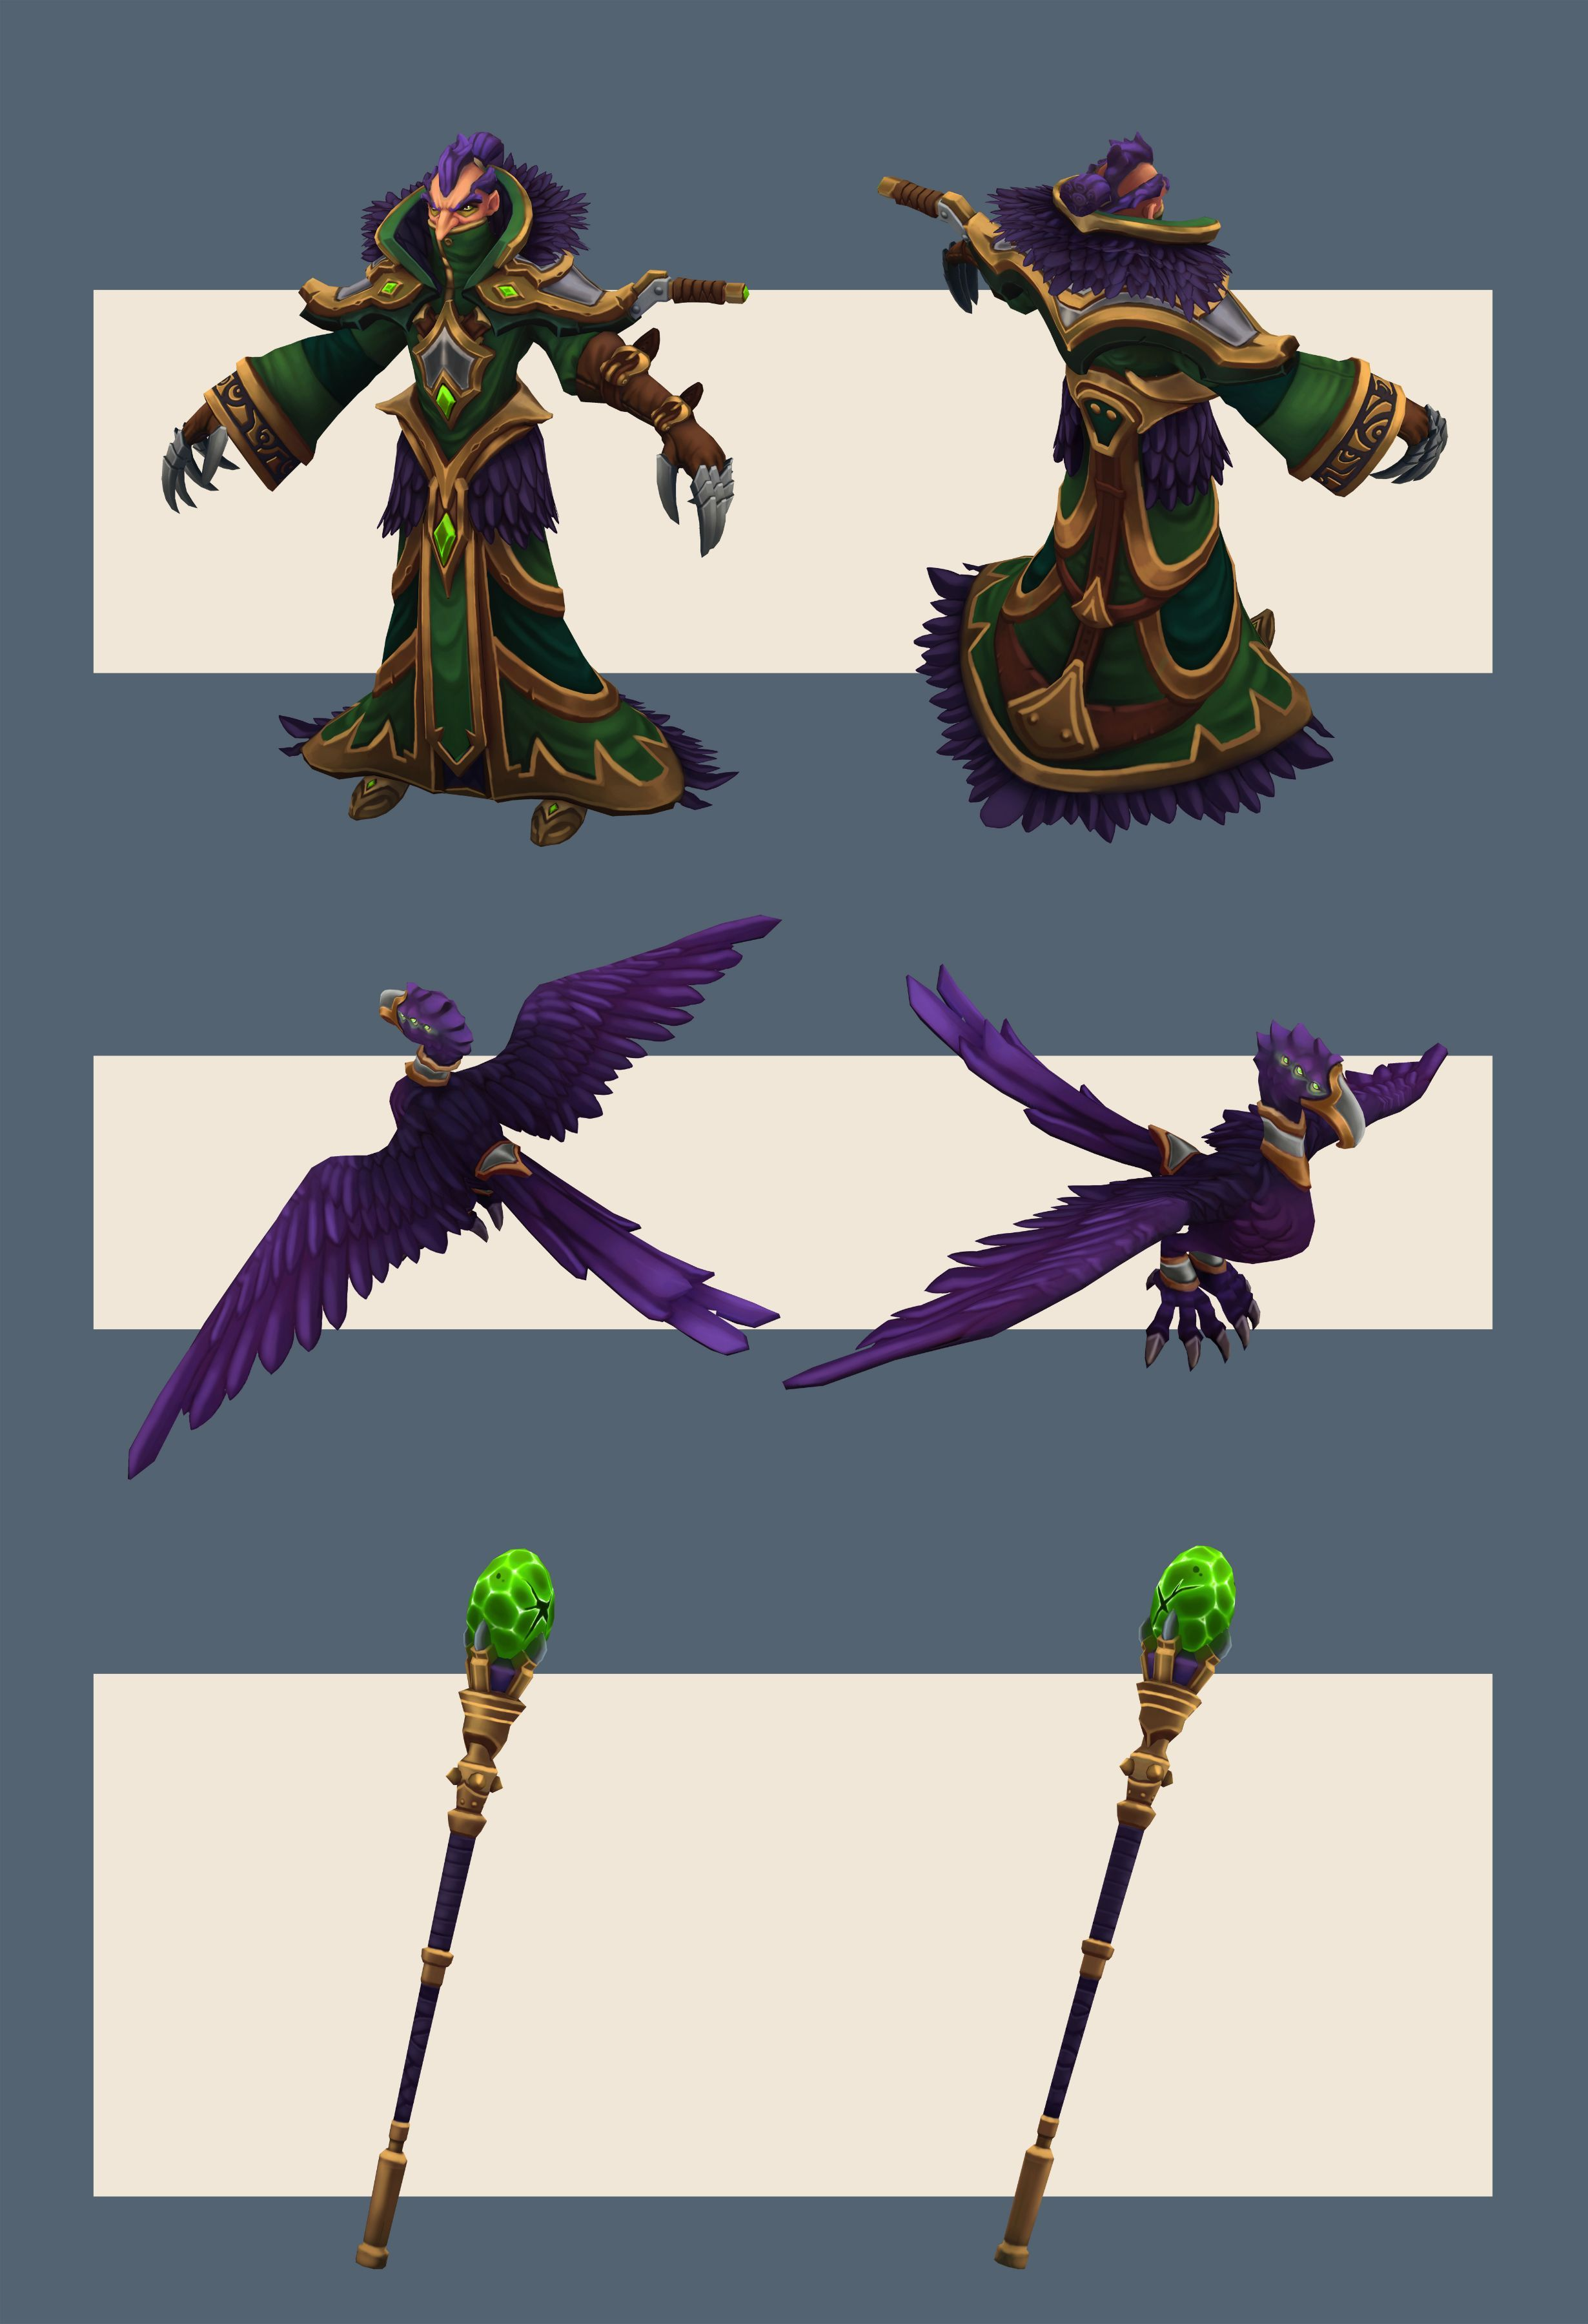 [Riot Art Contest] - Swain Redesign - Polycount Forum